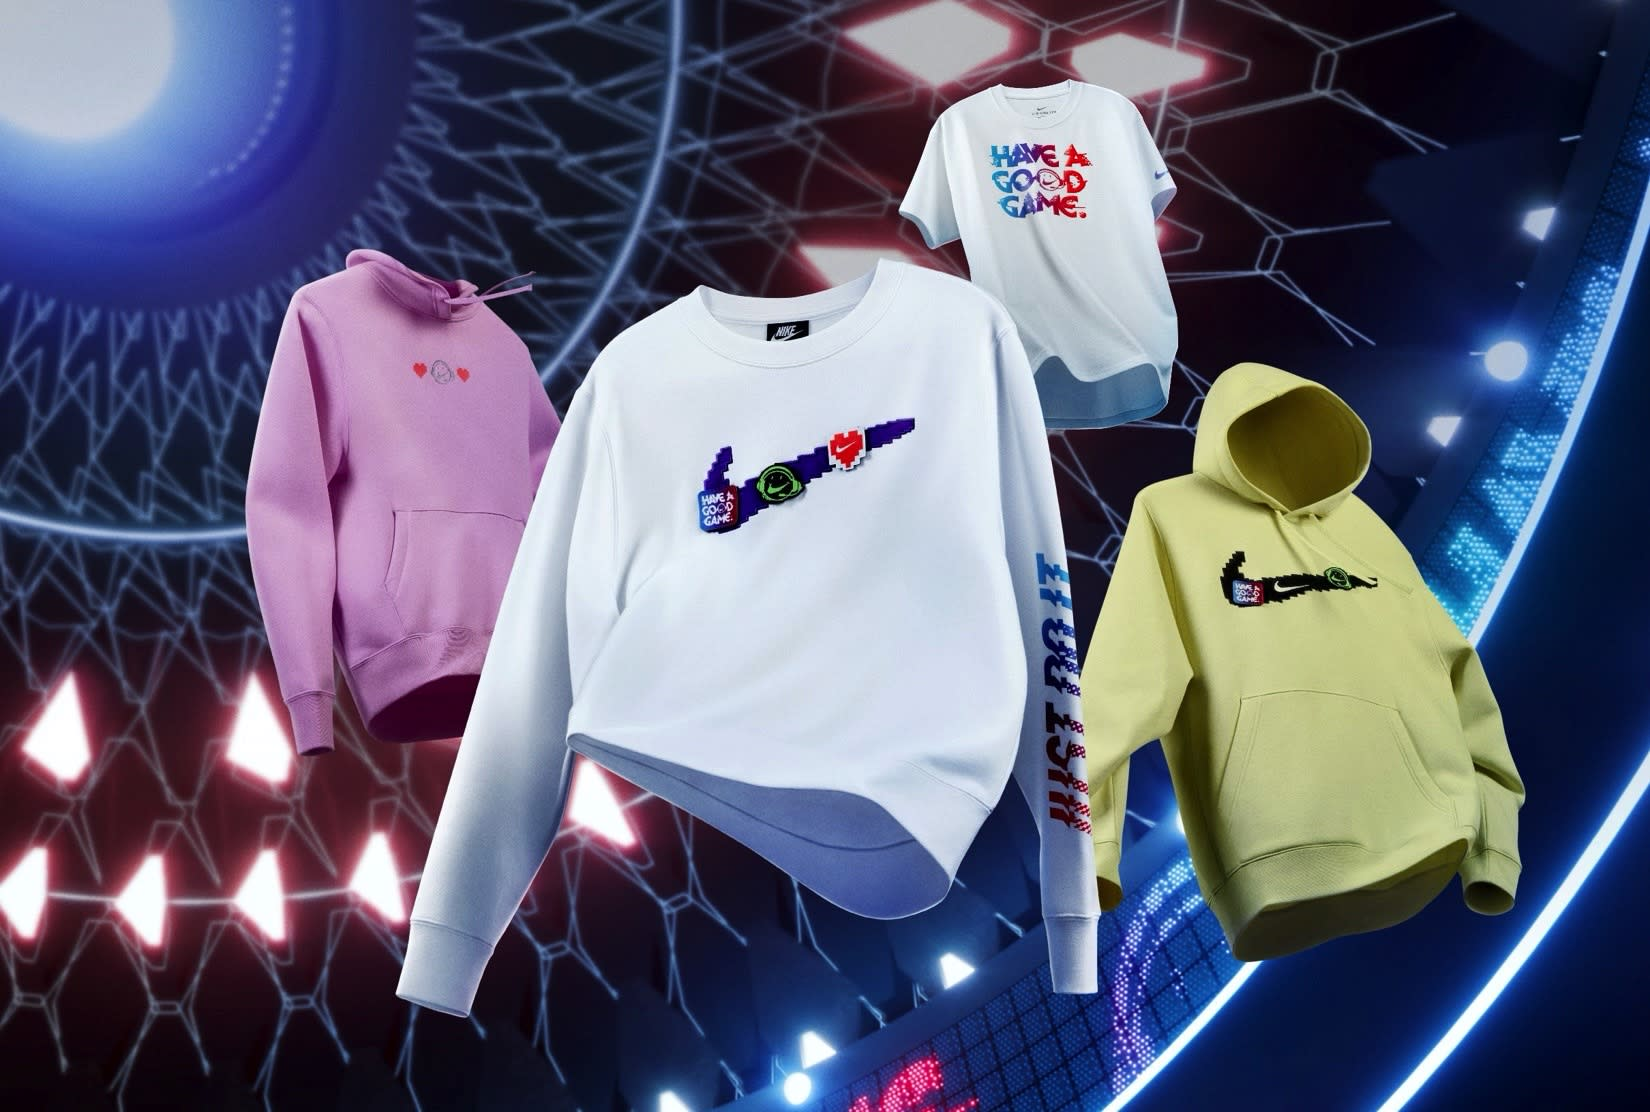 Nike 'Good Game' Apparel Collection